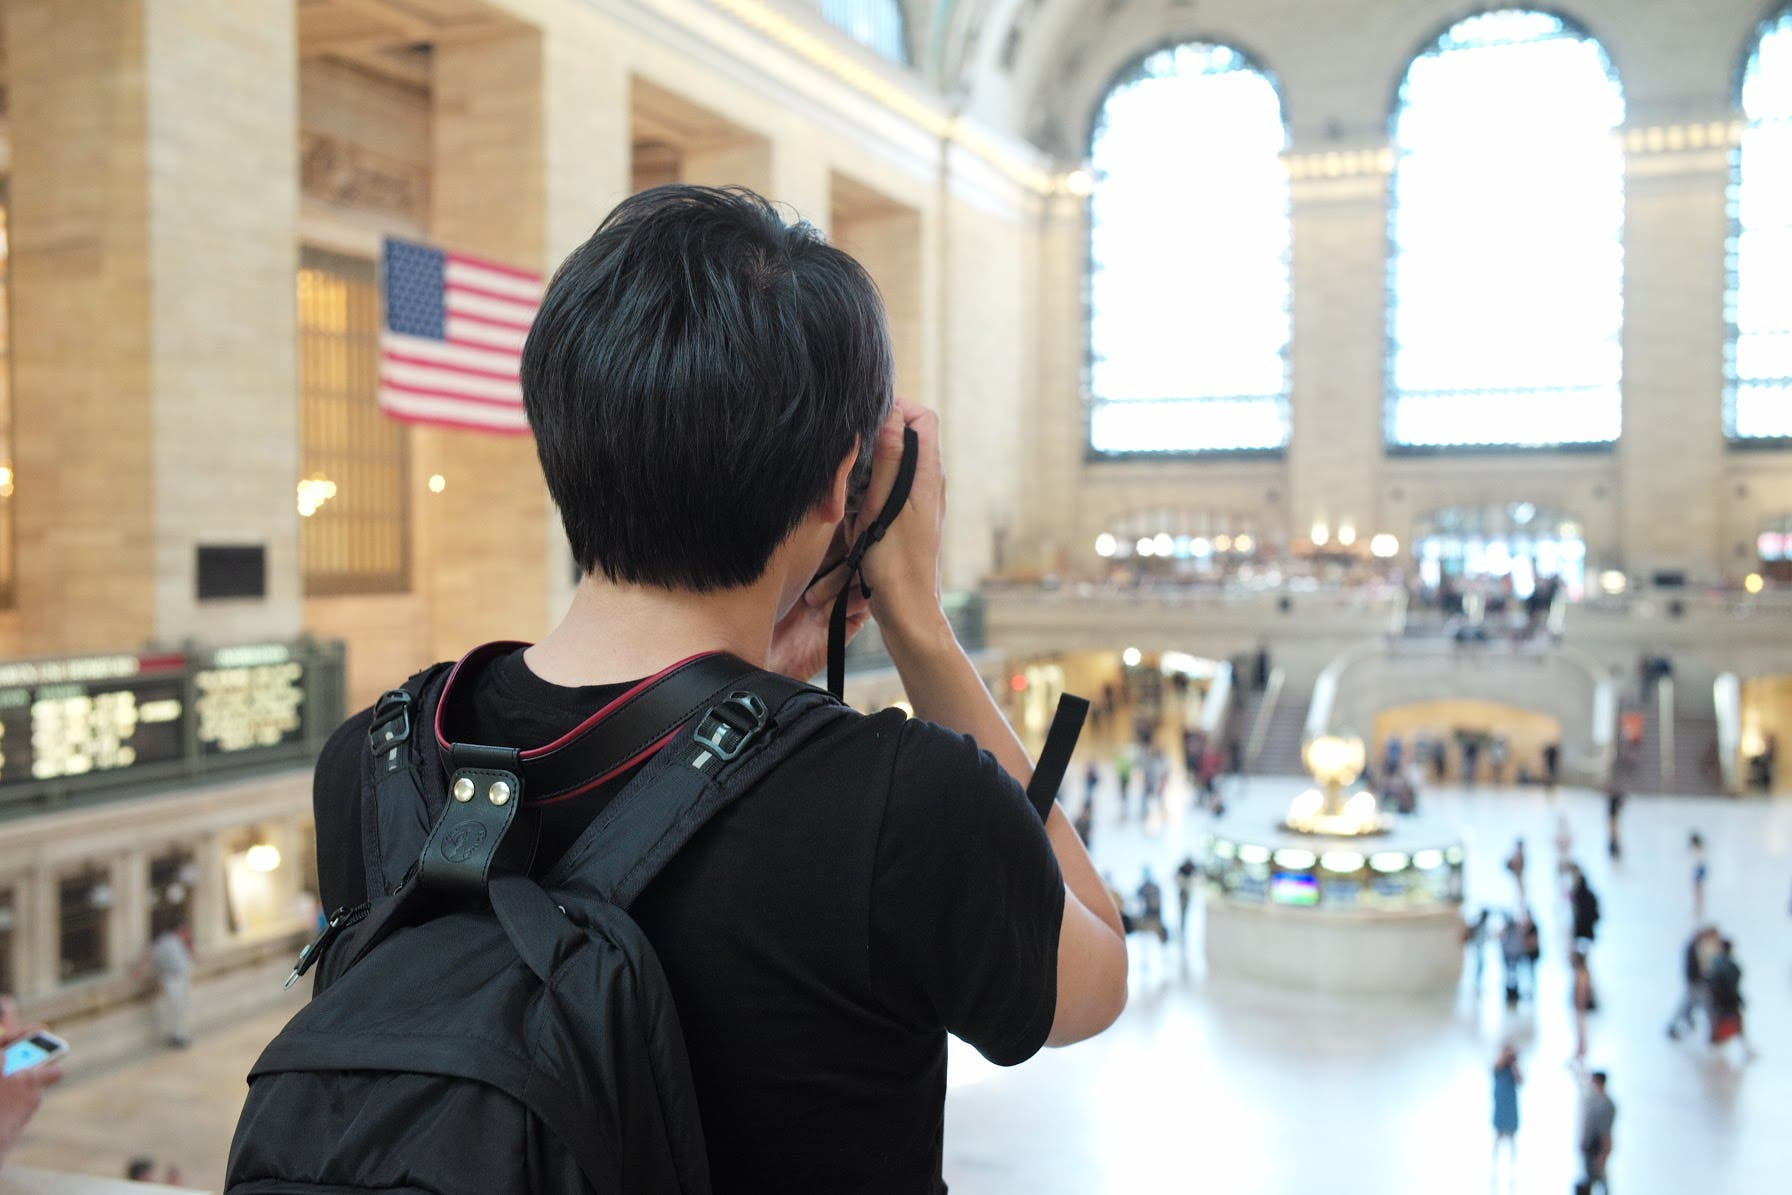 New Camera Lift-Strap Looks To Take The Weight Off Your Shoulders